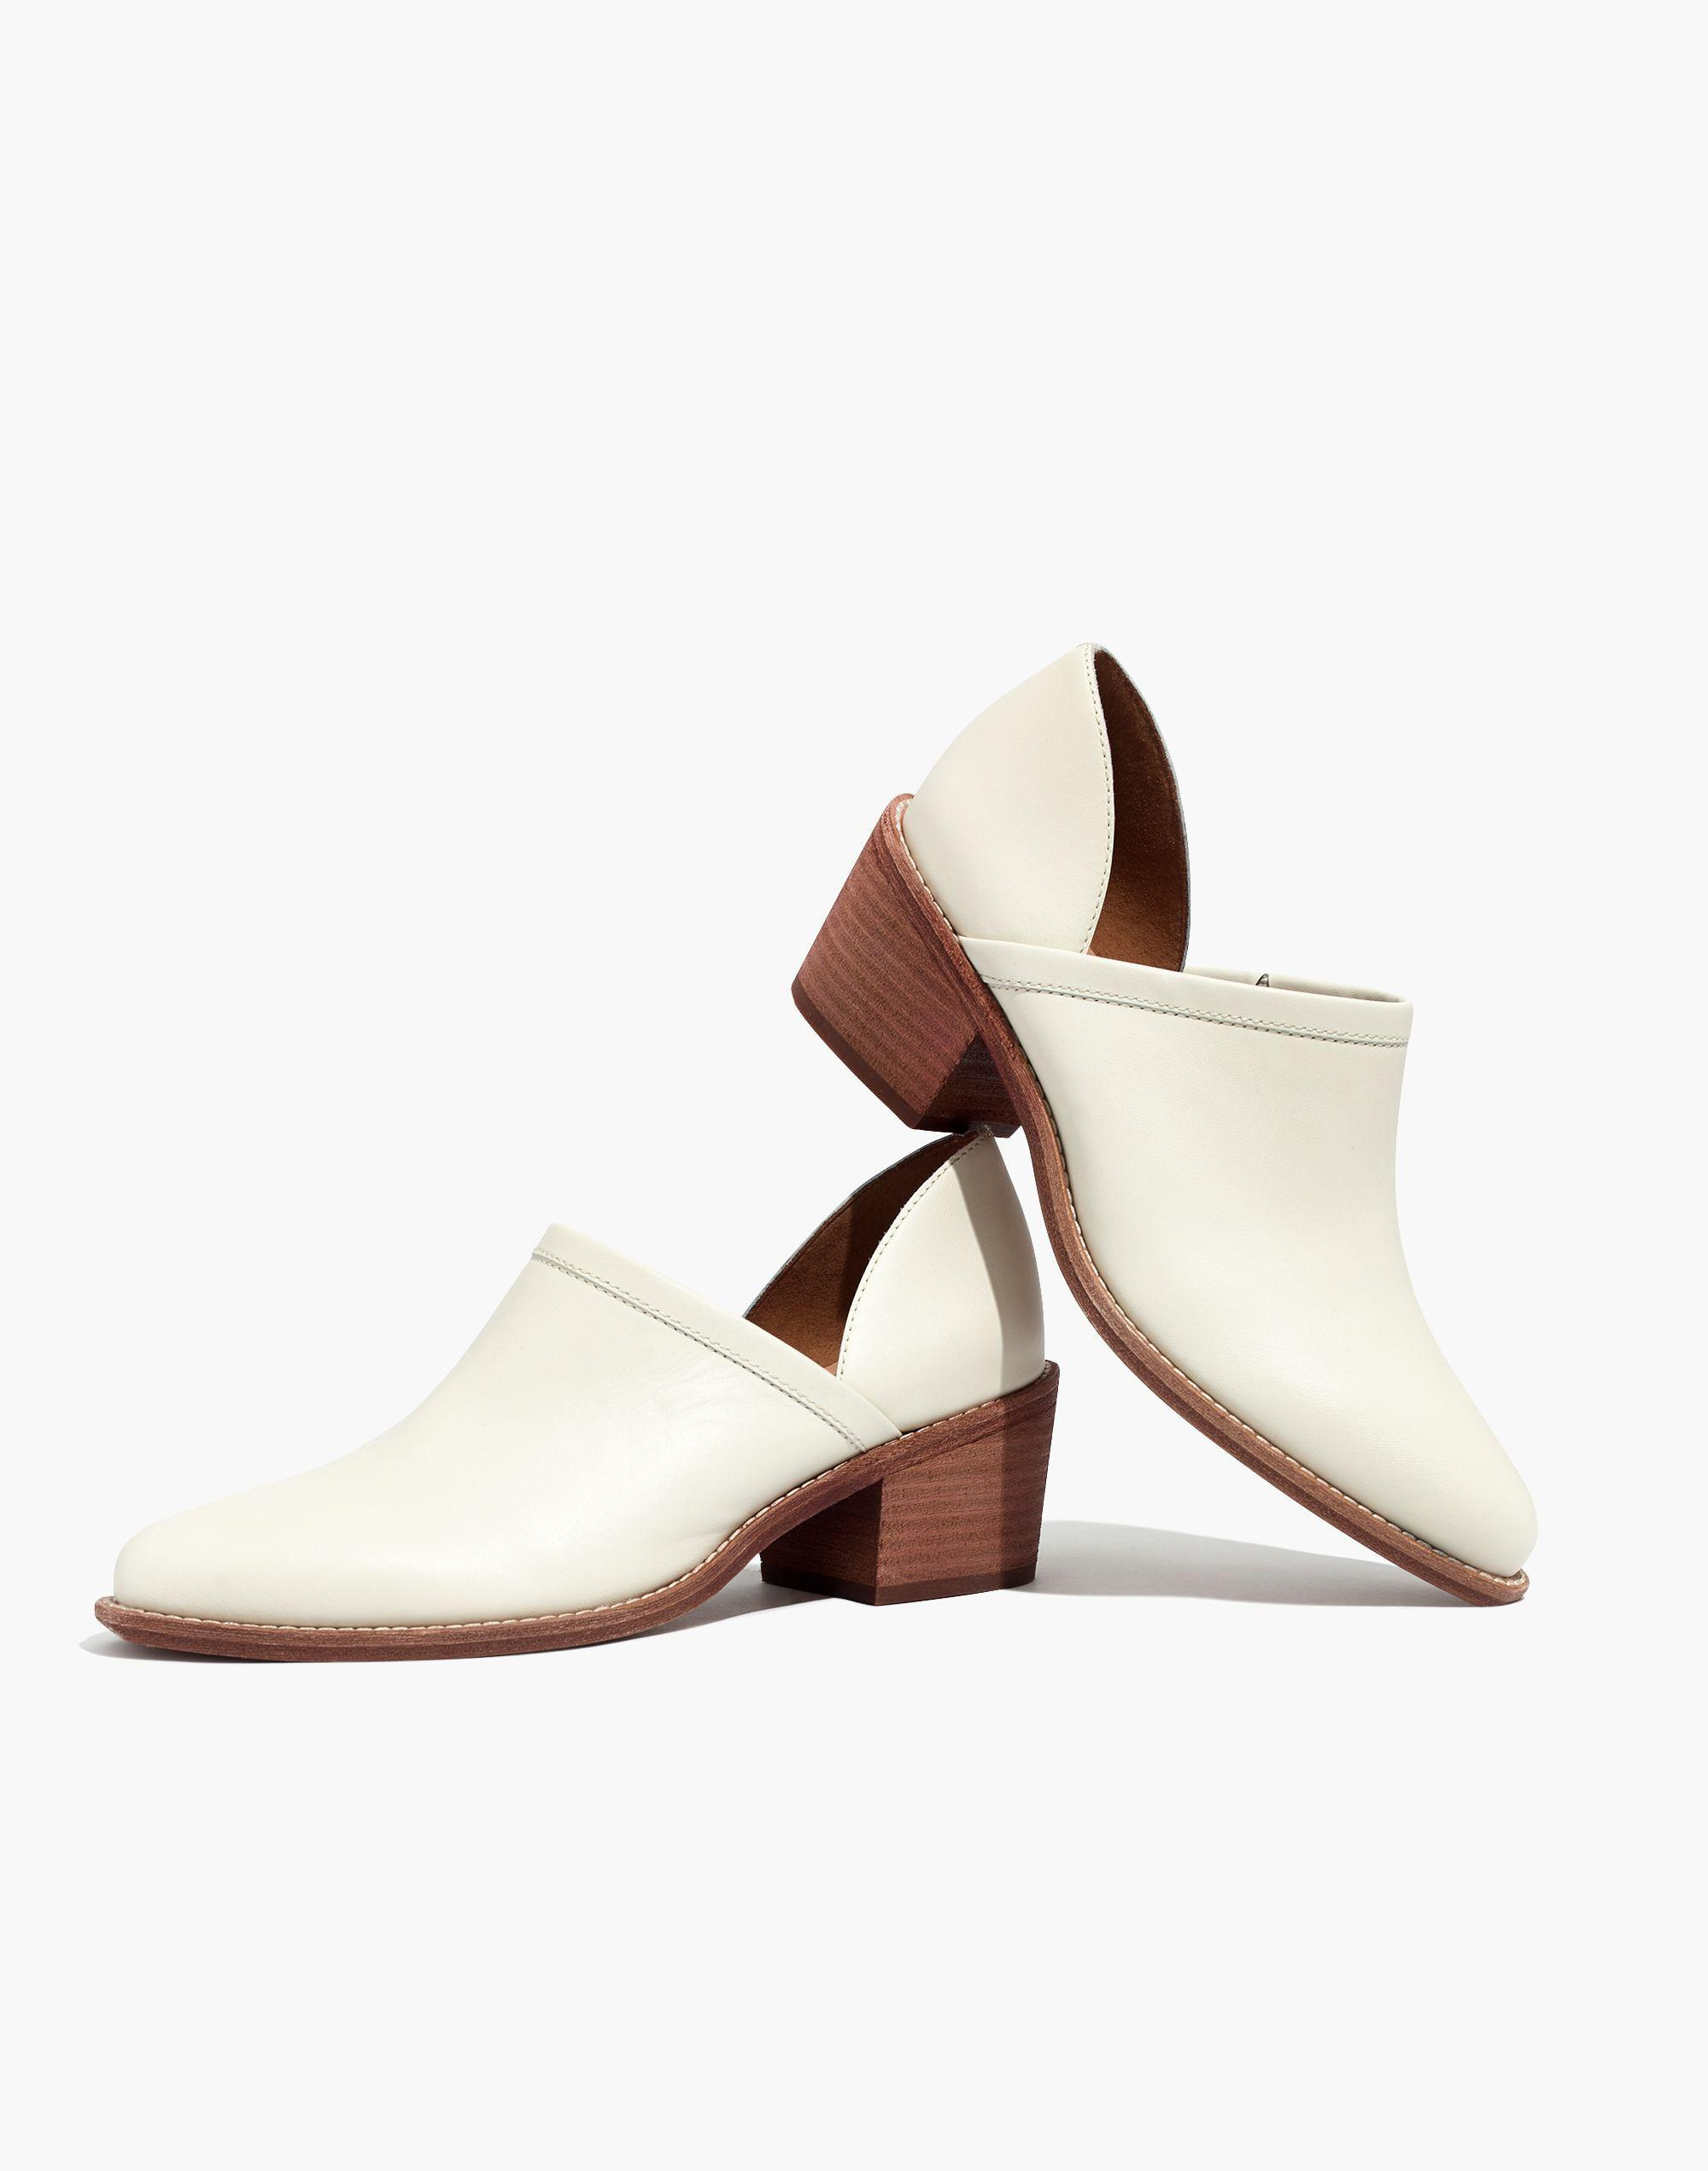 Slide on shoes that double as booties.